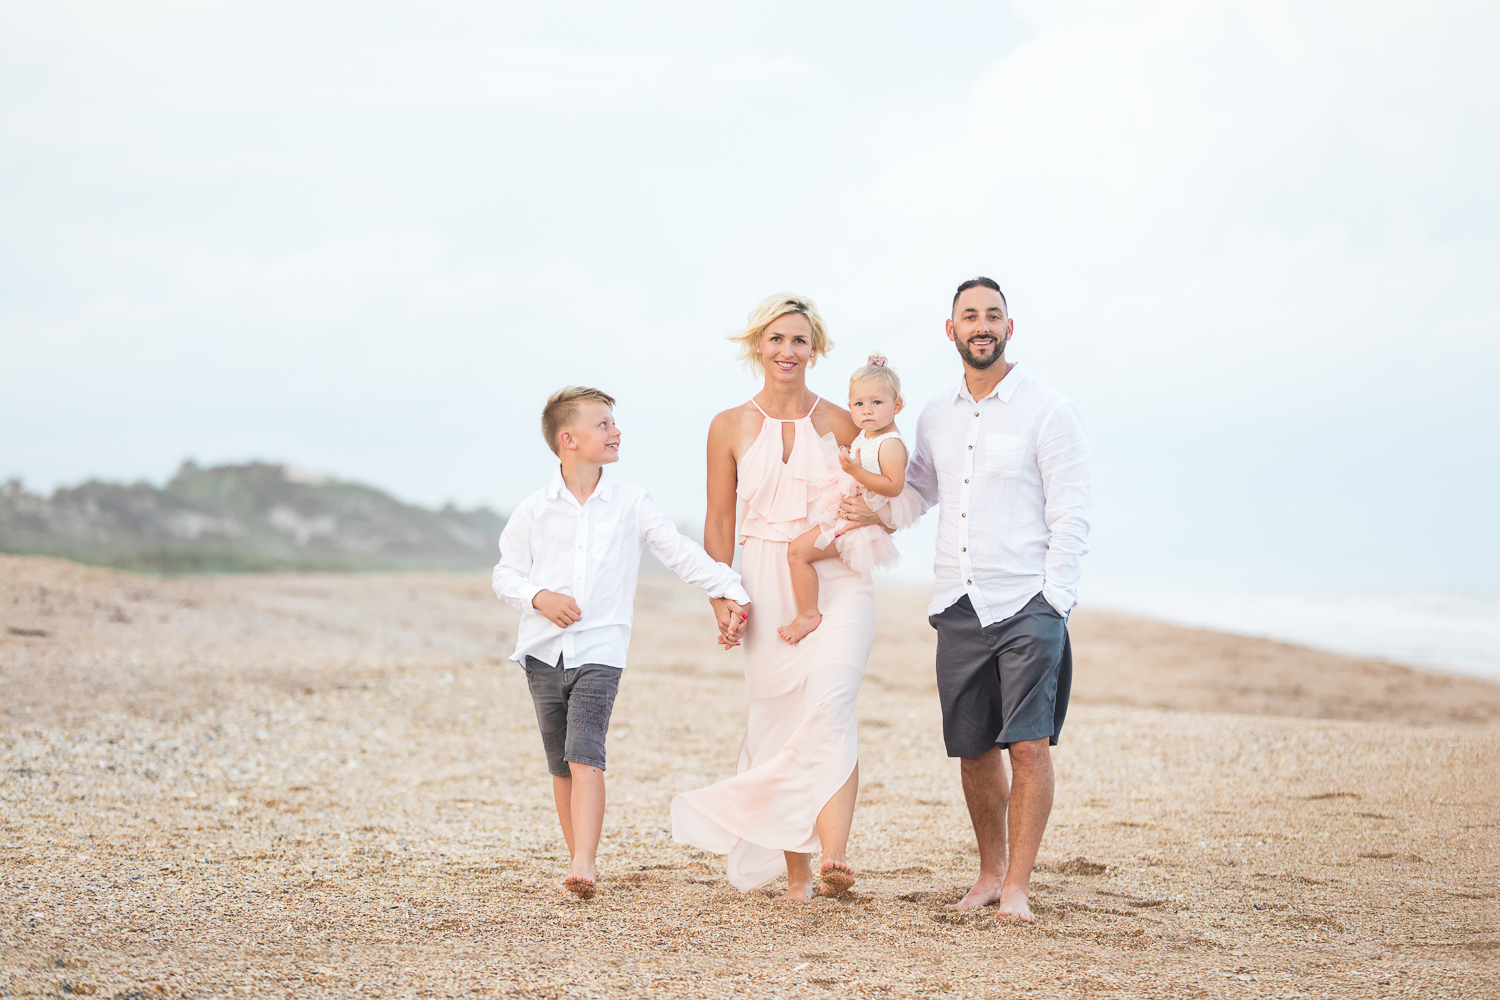 outfit and posing ideas for families at the beach